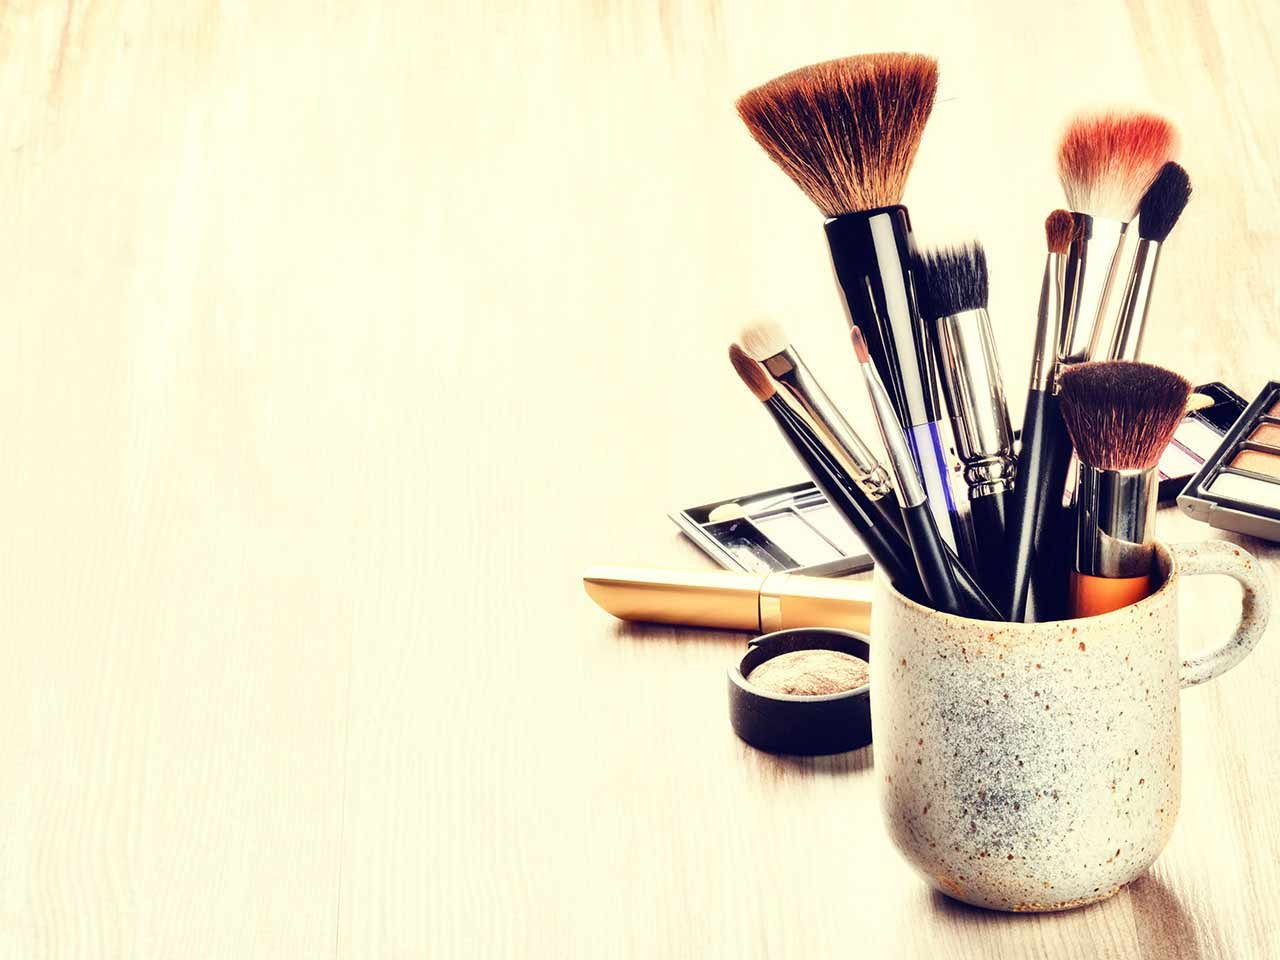 Makeup brushes for hiding dark circles and puffy eyes